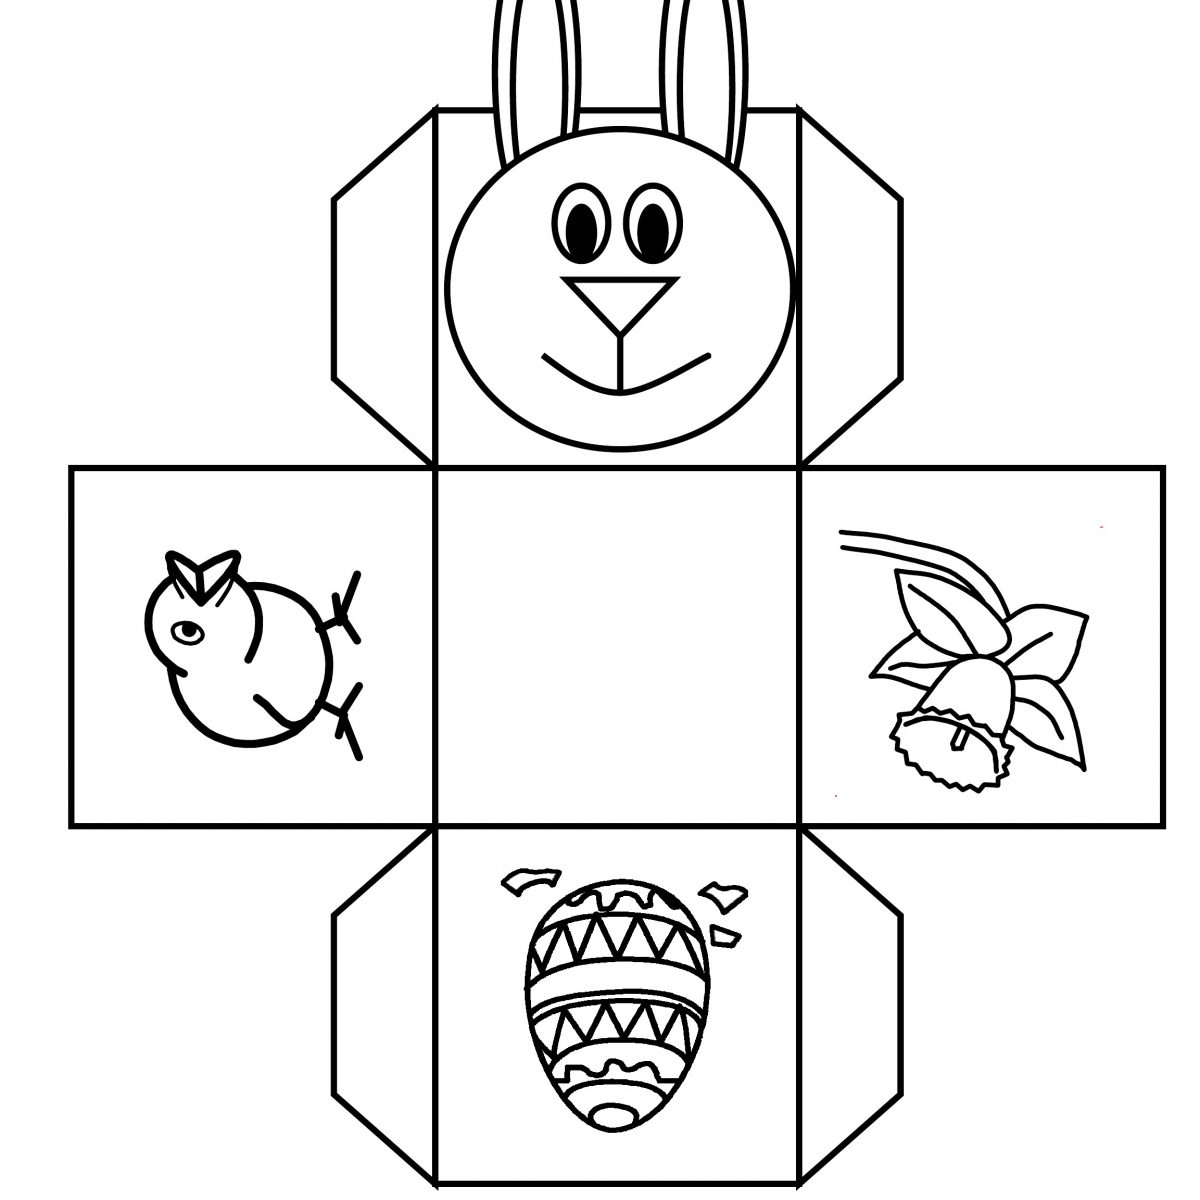 Easter Basket Templates To Print – Hd Easter Images - Free Printable Easter Egg Basket Templates